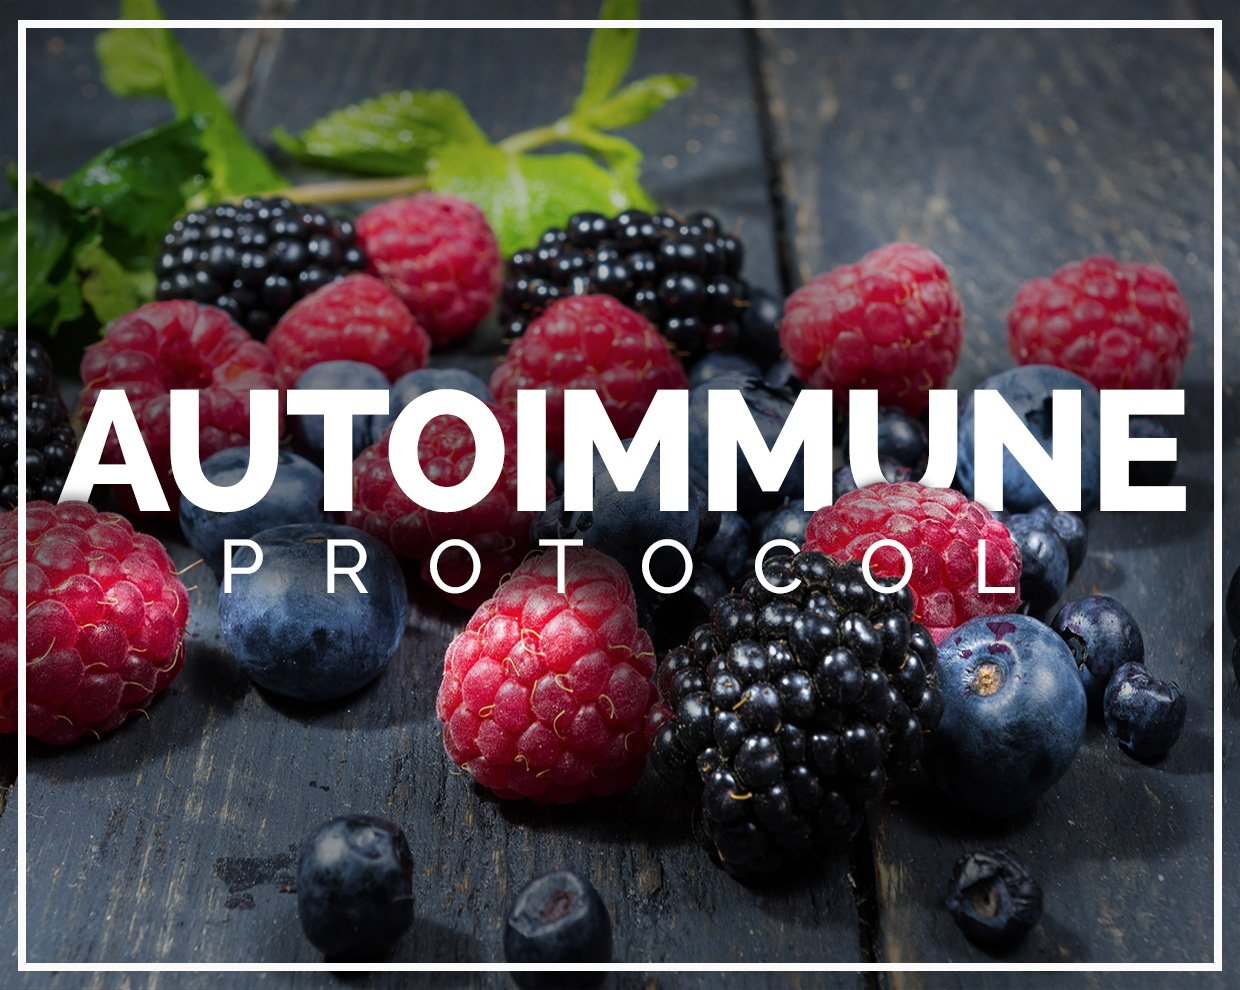 What is Autoimmune Protocol?